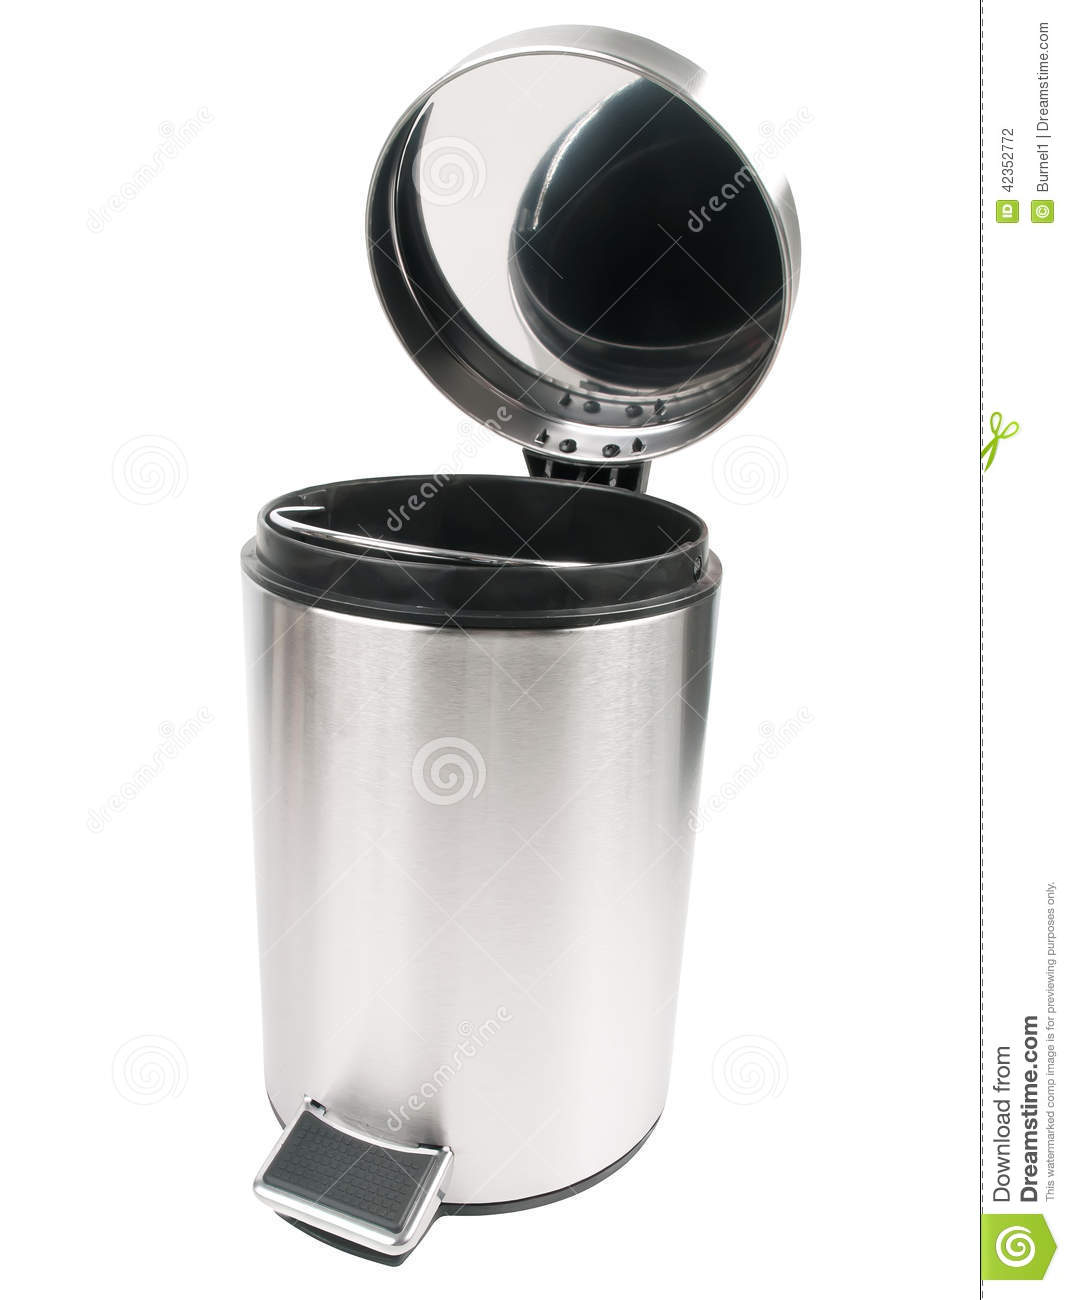 Open Trash Can Stock Photo - Image: 42352772